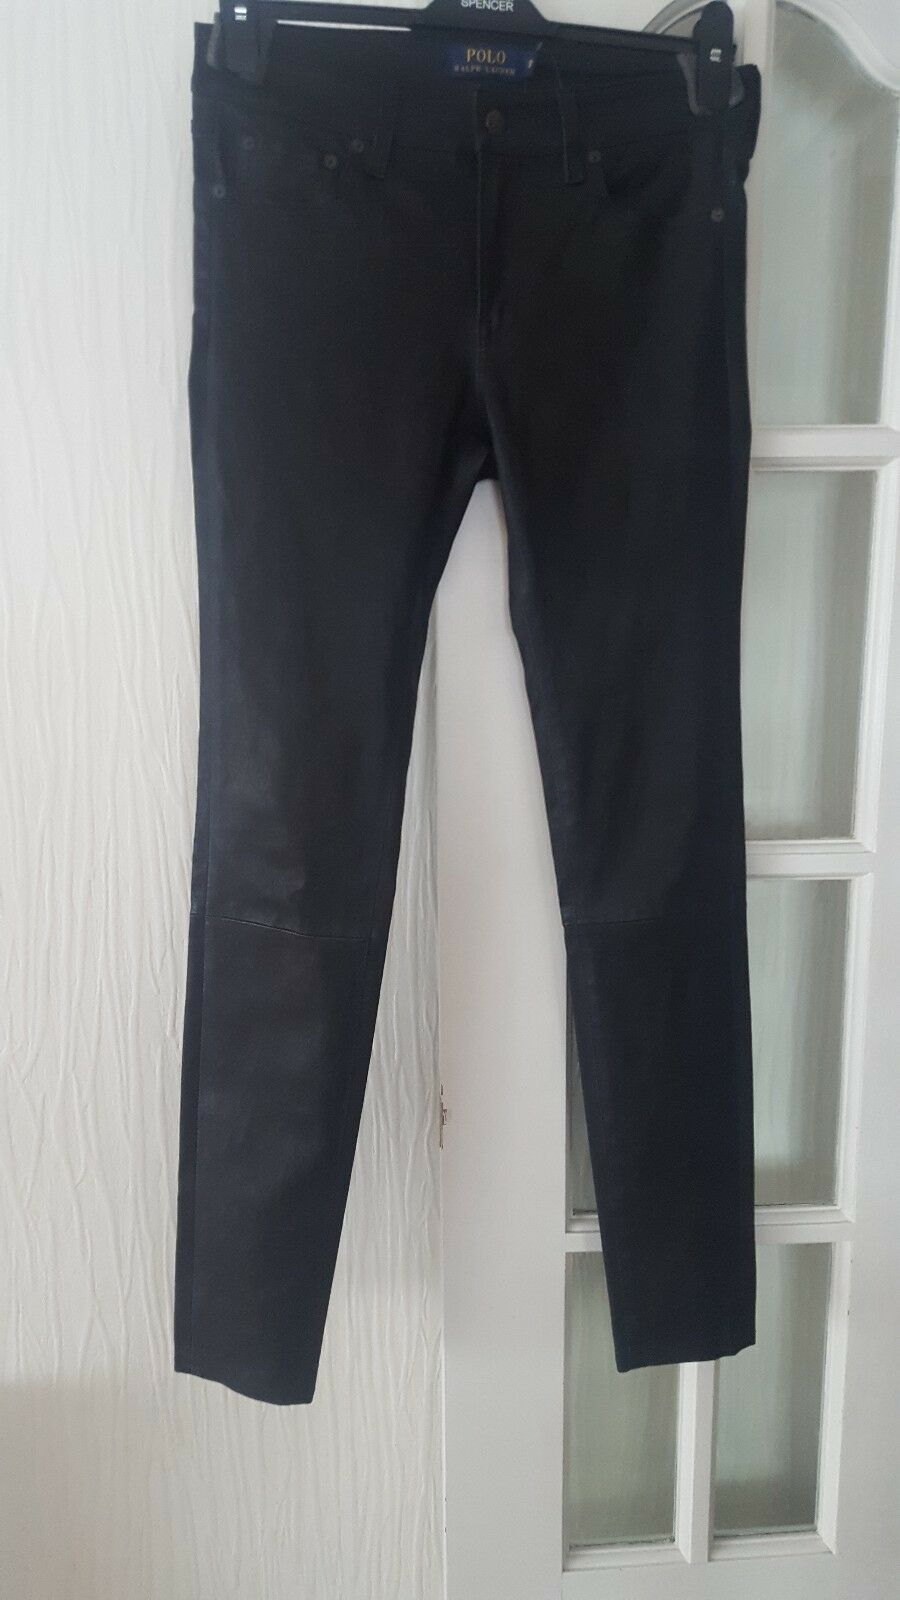 BNWT Genuine Polo Ralph Lauren Skinny Leather Trousers Size US 8 RRP